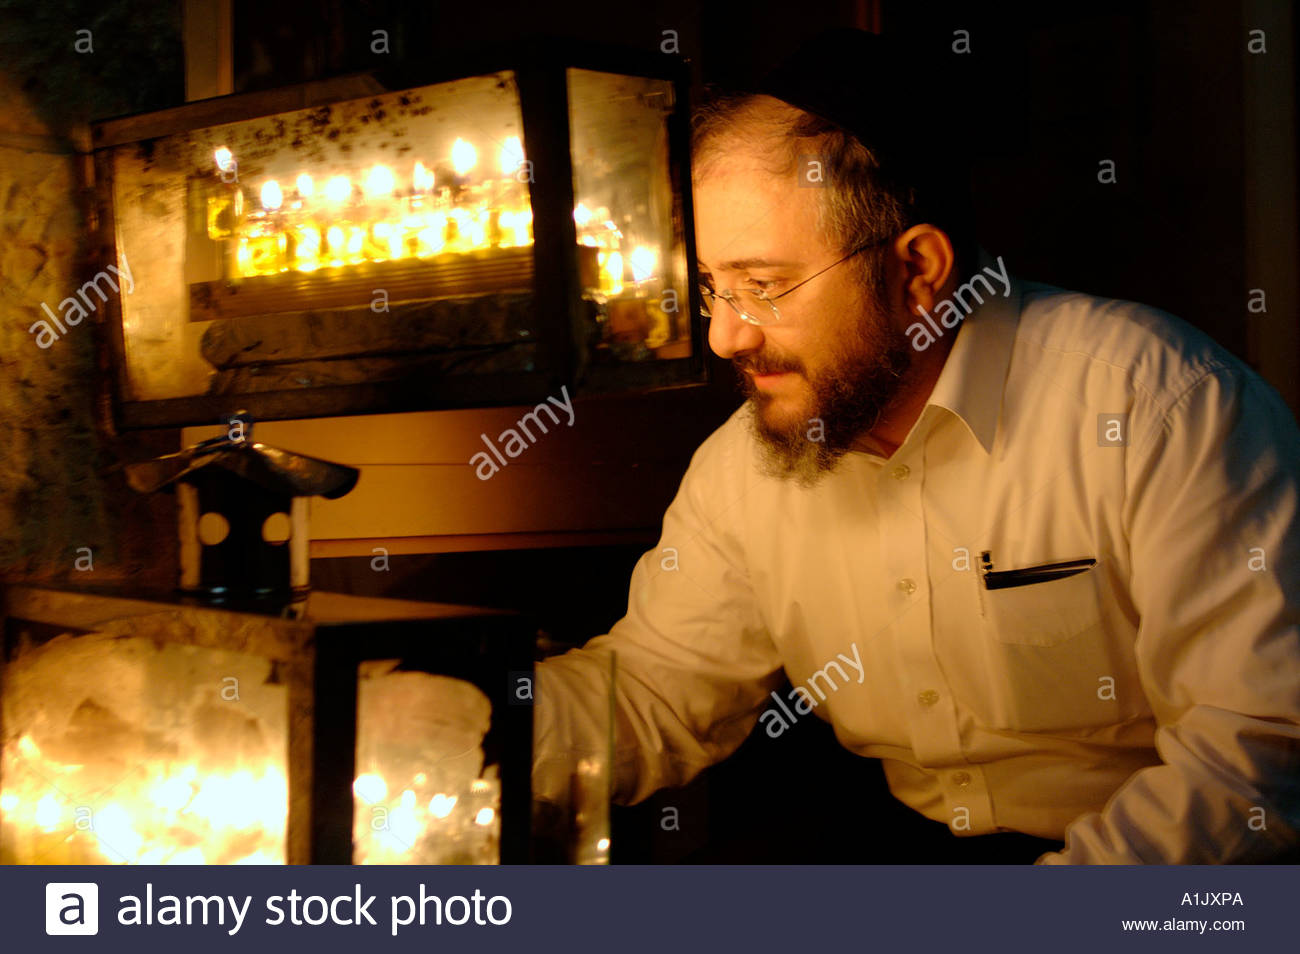 Orthodox Jewish man lighting traditional Hanukkah candles on Menorah candelabrum - Stock Image